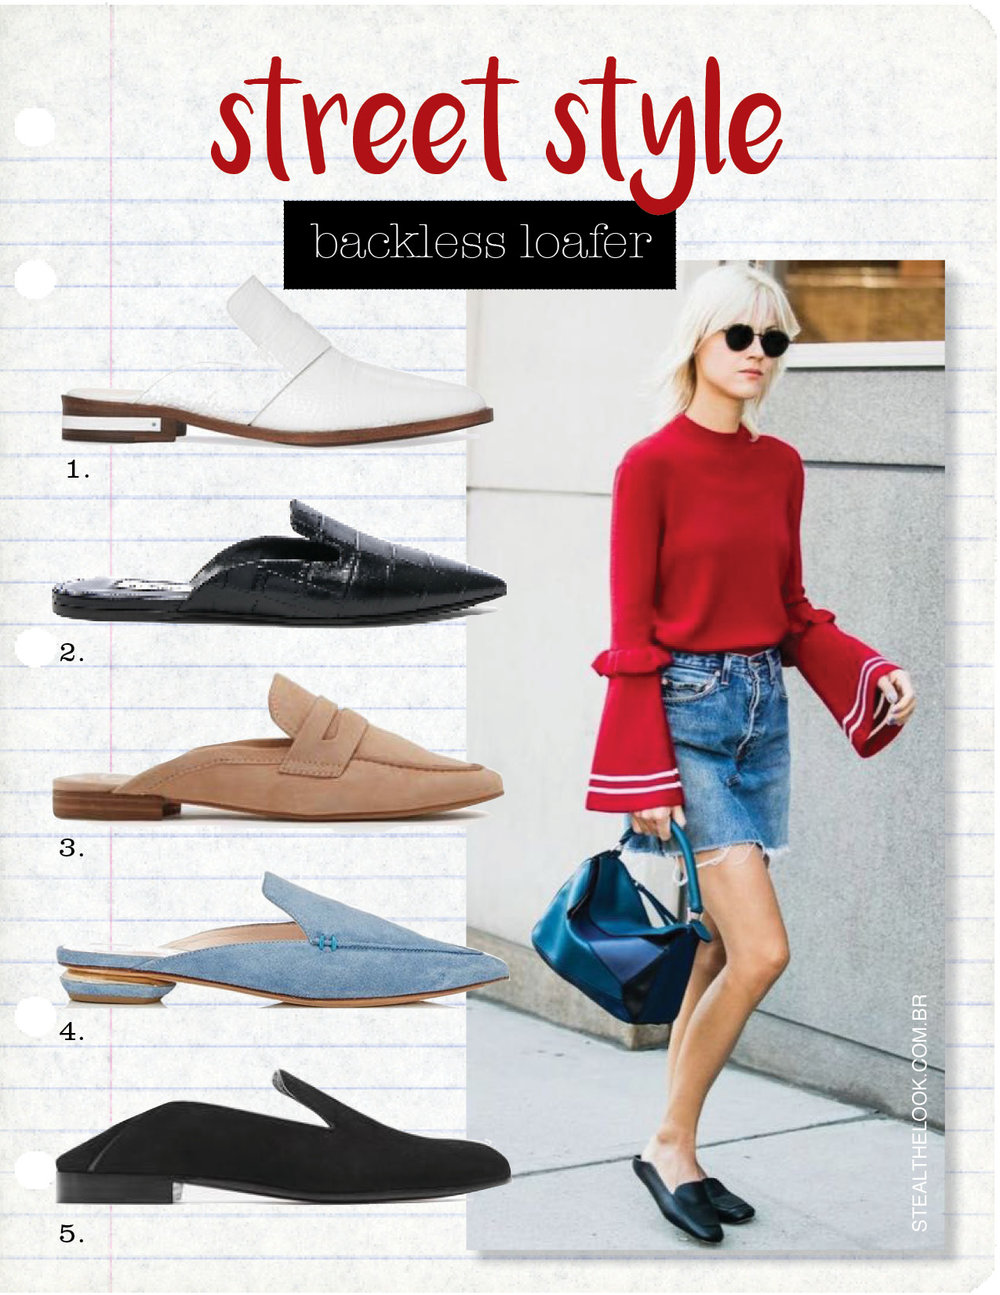 1. keen by freda salvador white embossed croc mule, $350,  shopspring.com  2. attico croc embossed tomaia flats, $535,  fwrd.com  3. dolce vita cybil flats, $99,  nordstrom.com  4. beya suede mules by nicholas kirkwood, $425,  shopspring.com  5. alumnae garconne step-down slipper, $575,  theline.com